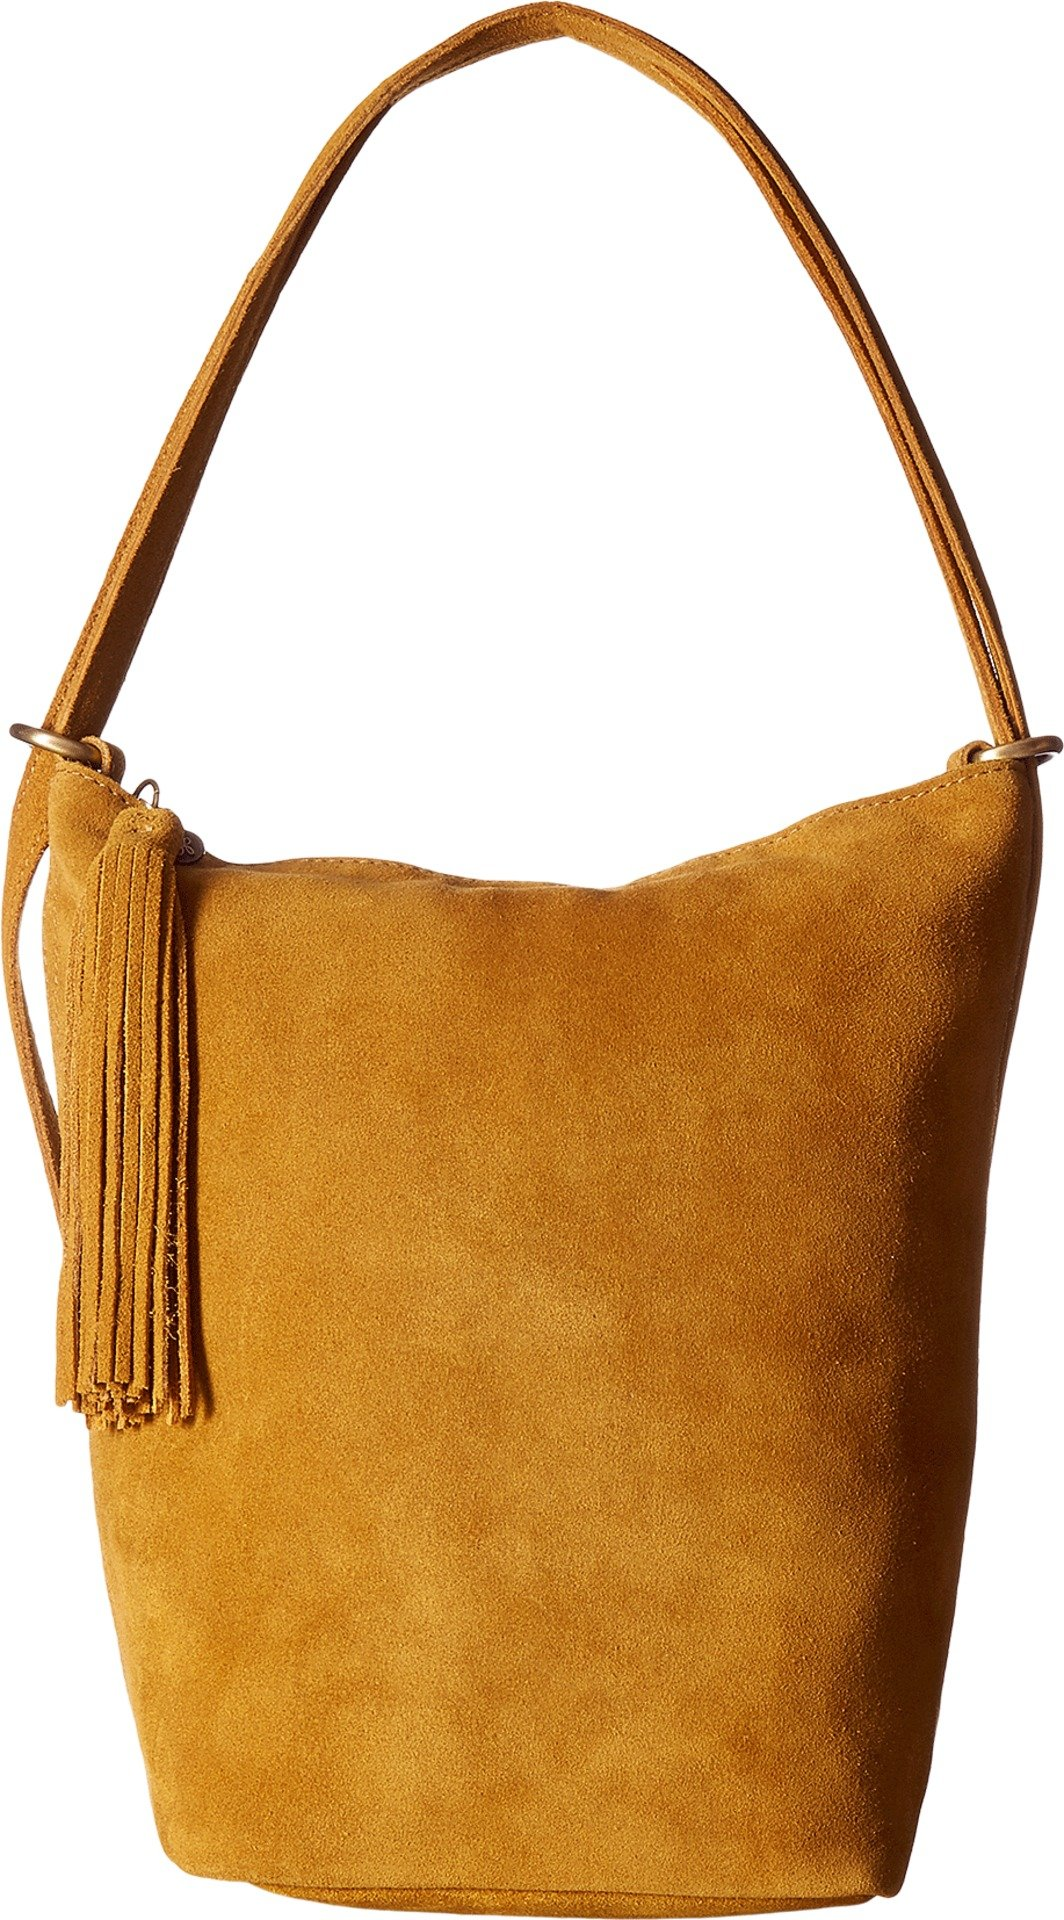 Hobo Women's Blaze Harvest Handbag by HOBO